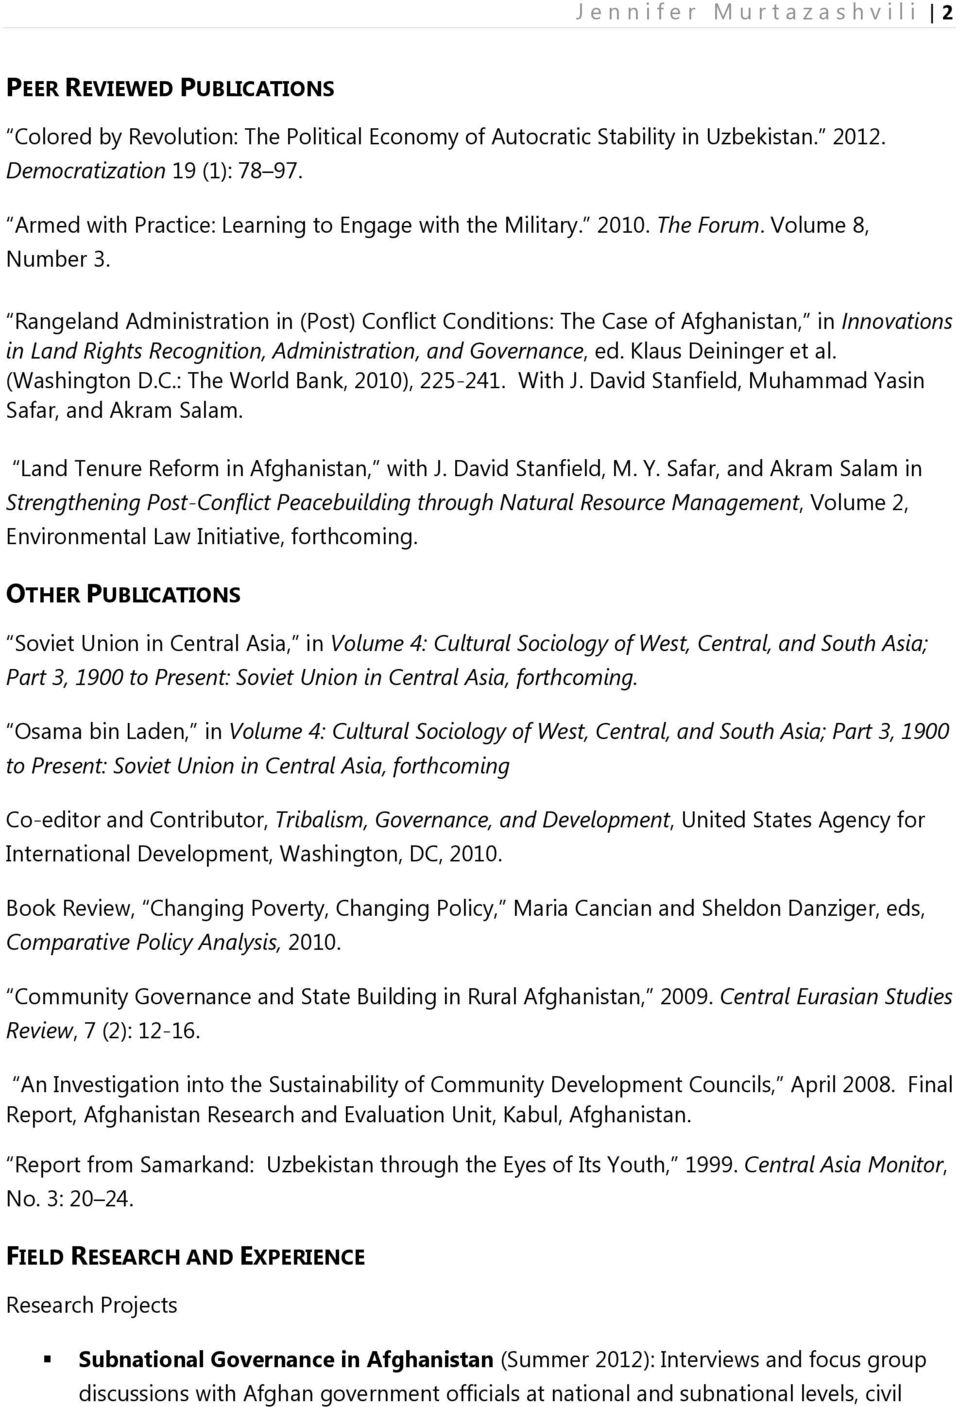 Rangeland Administration in (Post) Conflict Conditions: The Case of Afghanistan, in Innovations in Land Rights Recognition, Administration, and Governance, ed. Klaus Deininger et al. (Washington D.C.: The World Bank, 2010), 225-241.